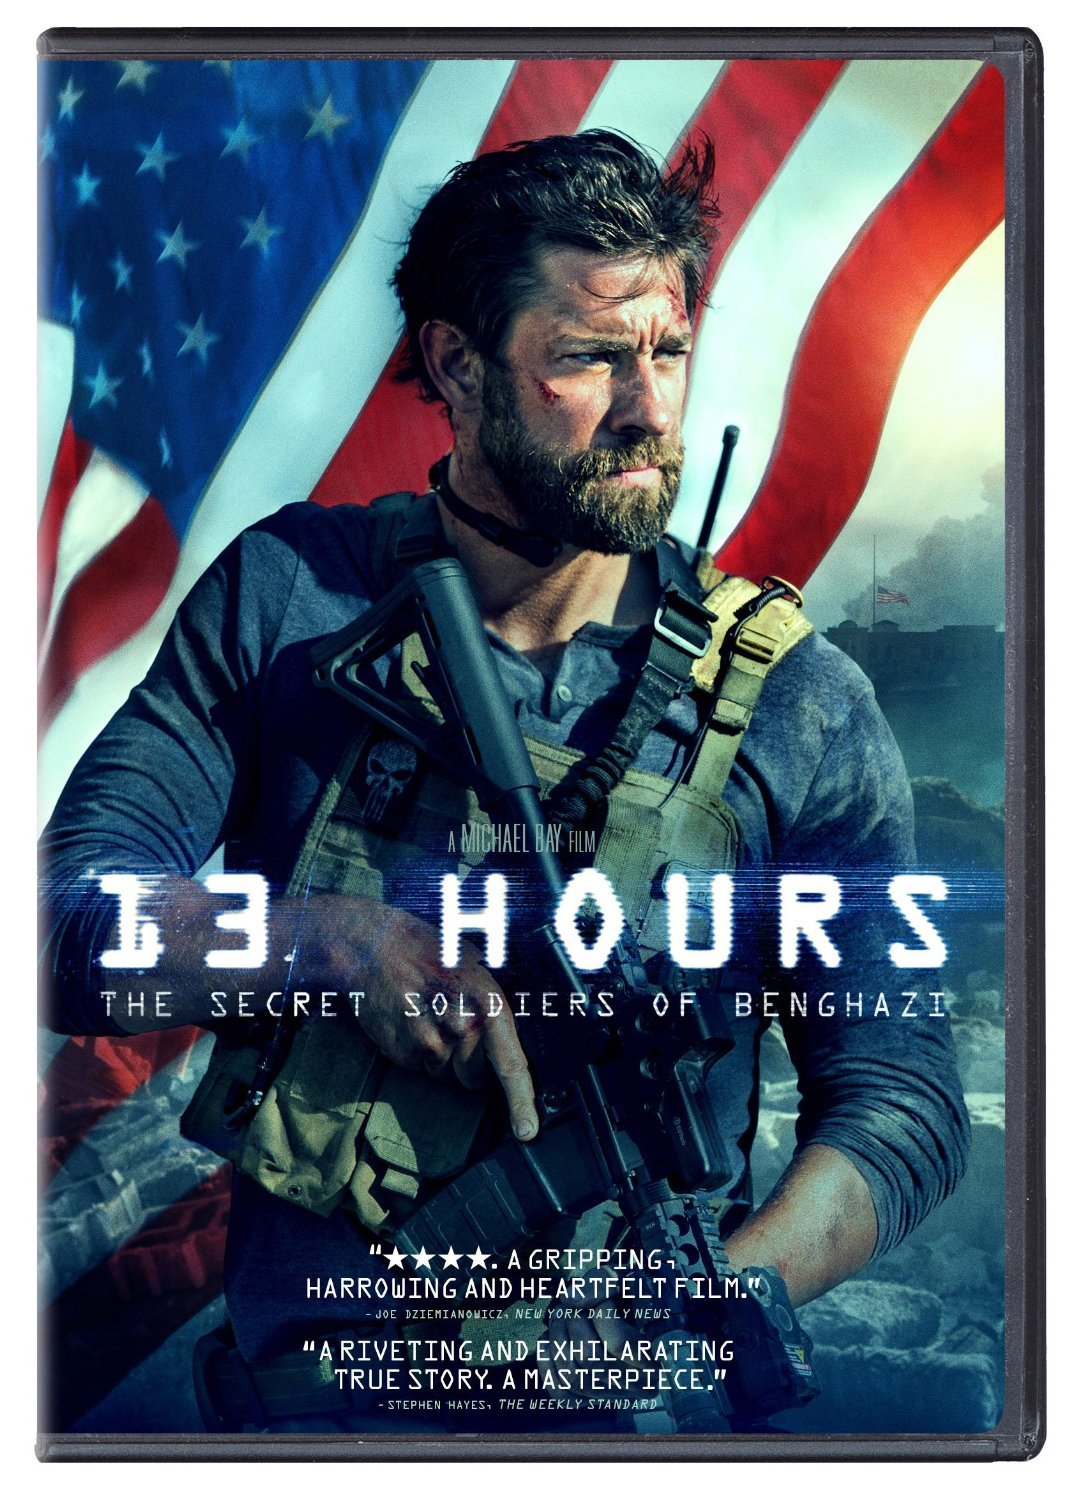 13 Hours: The Secret Soldiers of Benghazi (2016) DVD